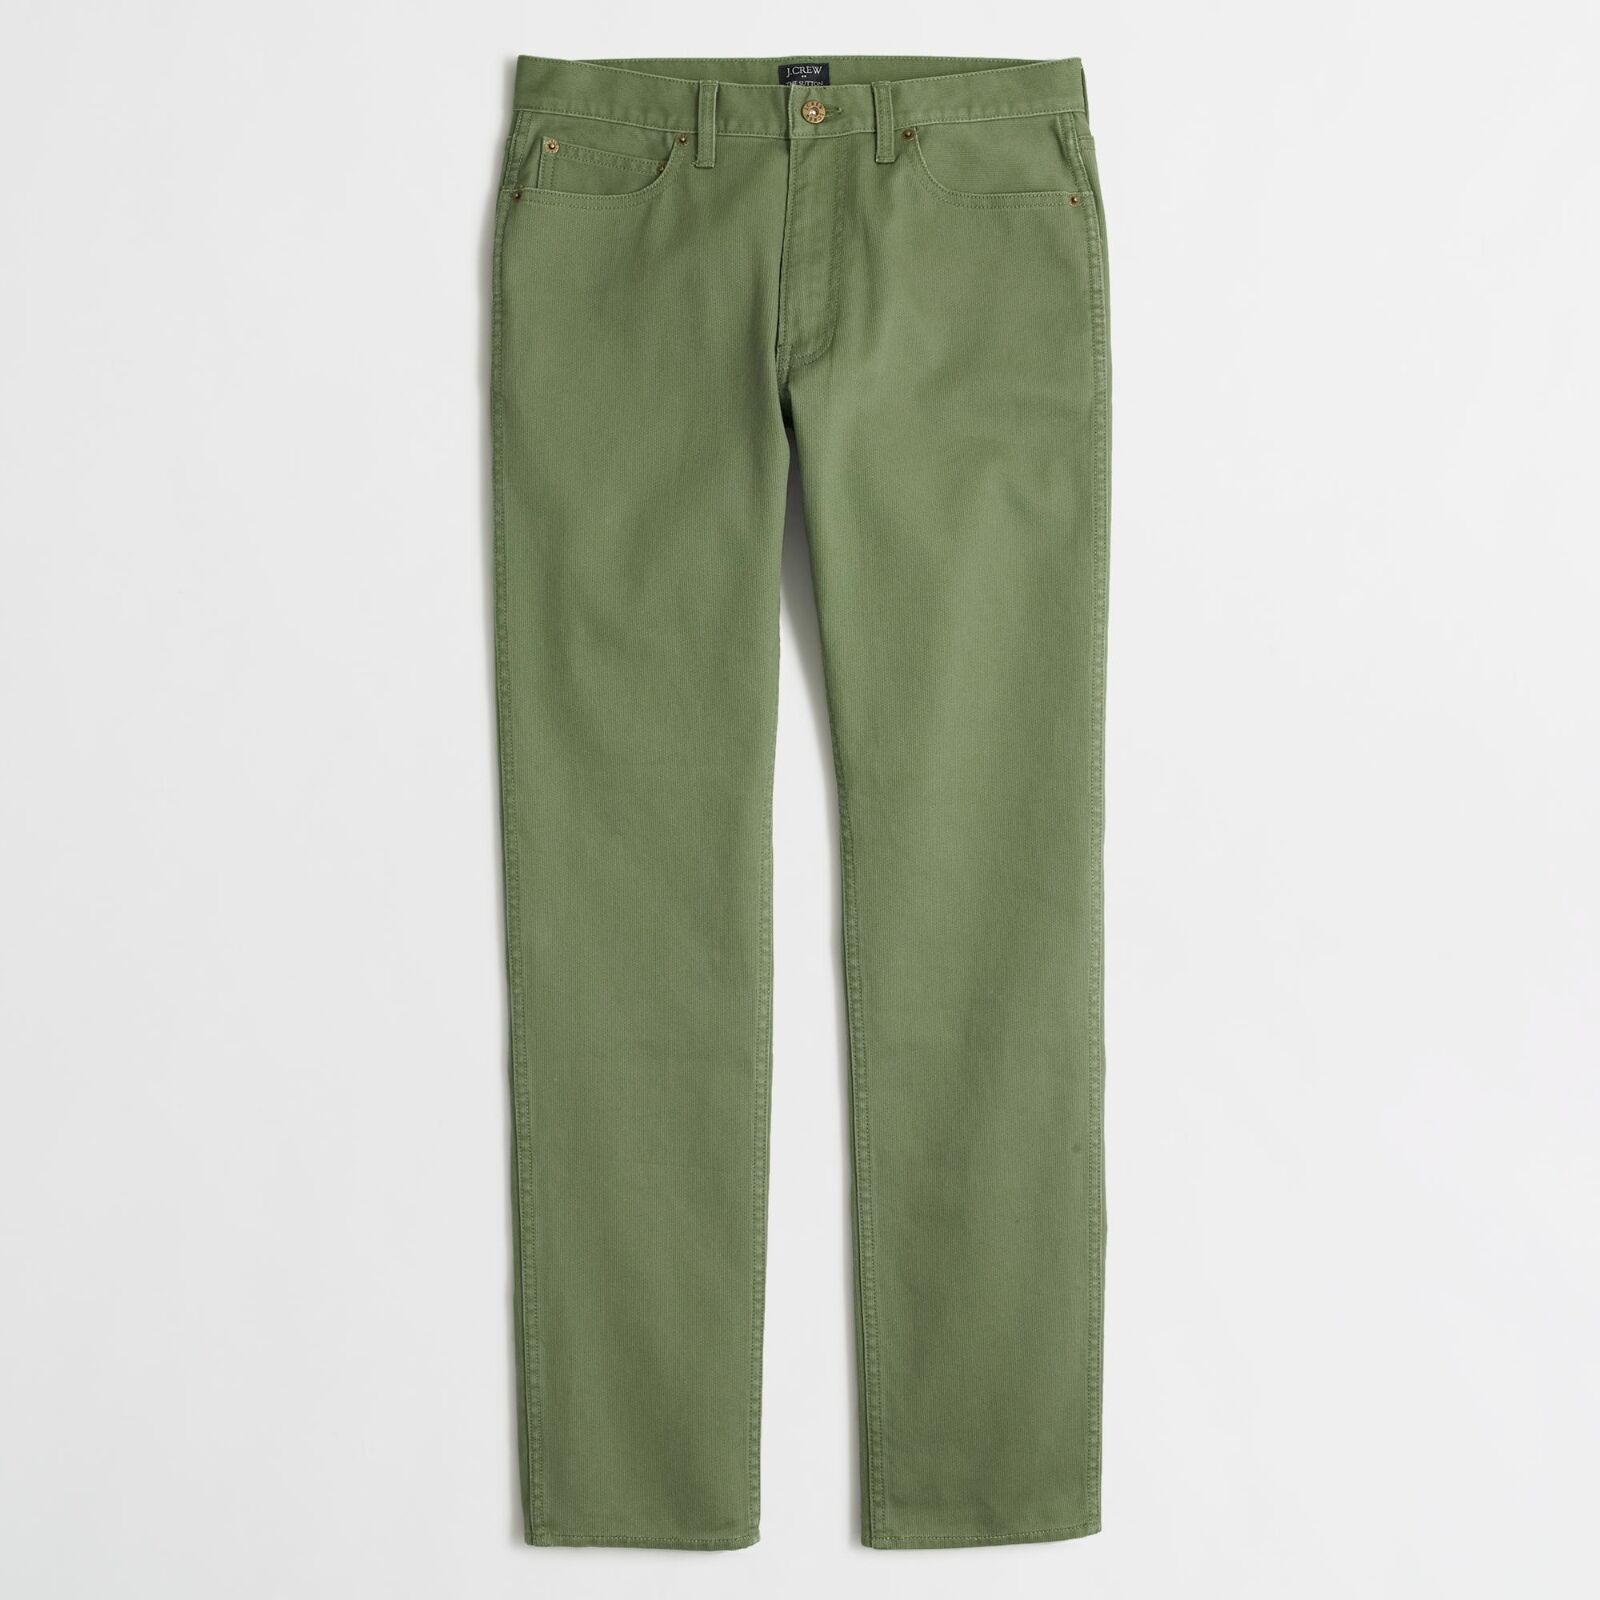 J. Crew Factory - 32 32 - NWT  - Green Slim Fit Bedford Corduroy Cotton Pants